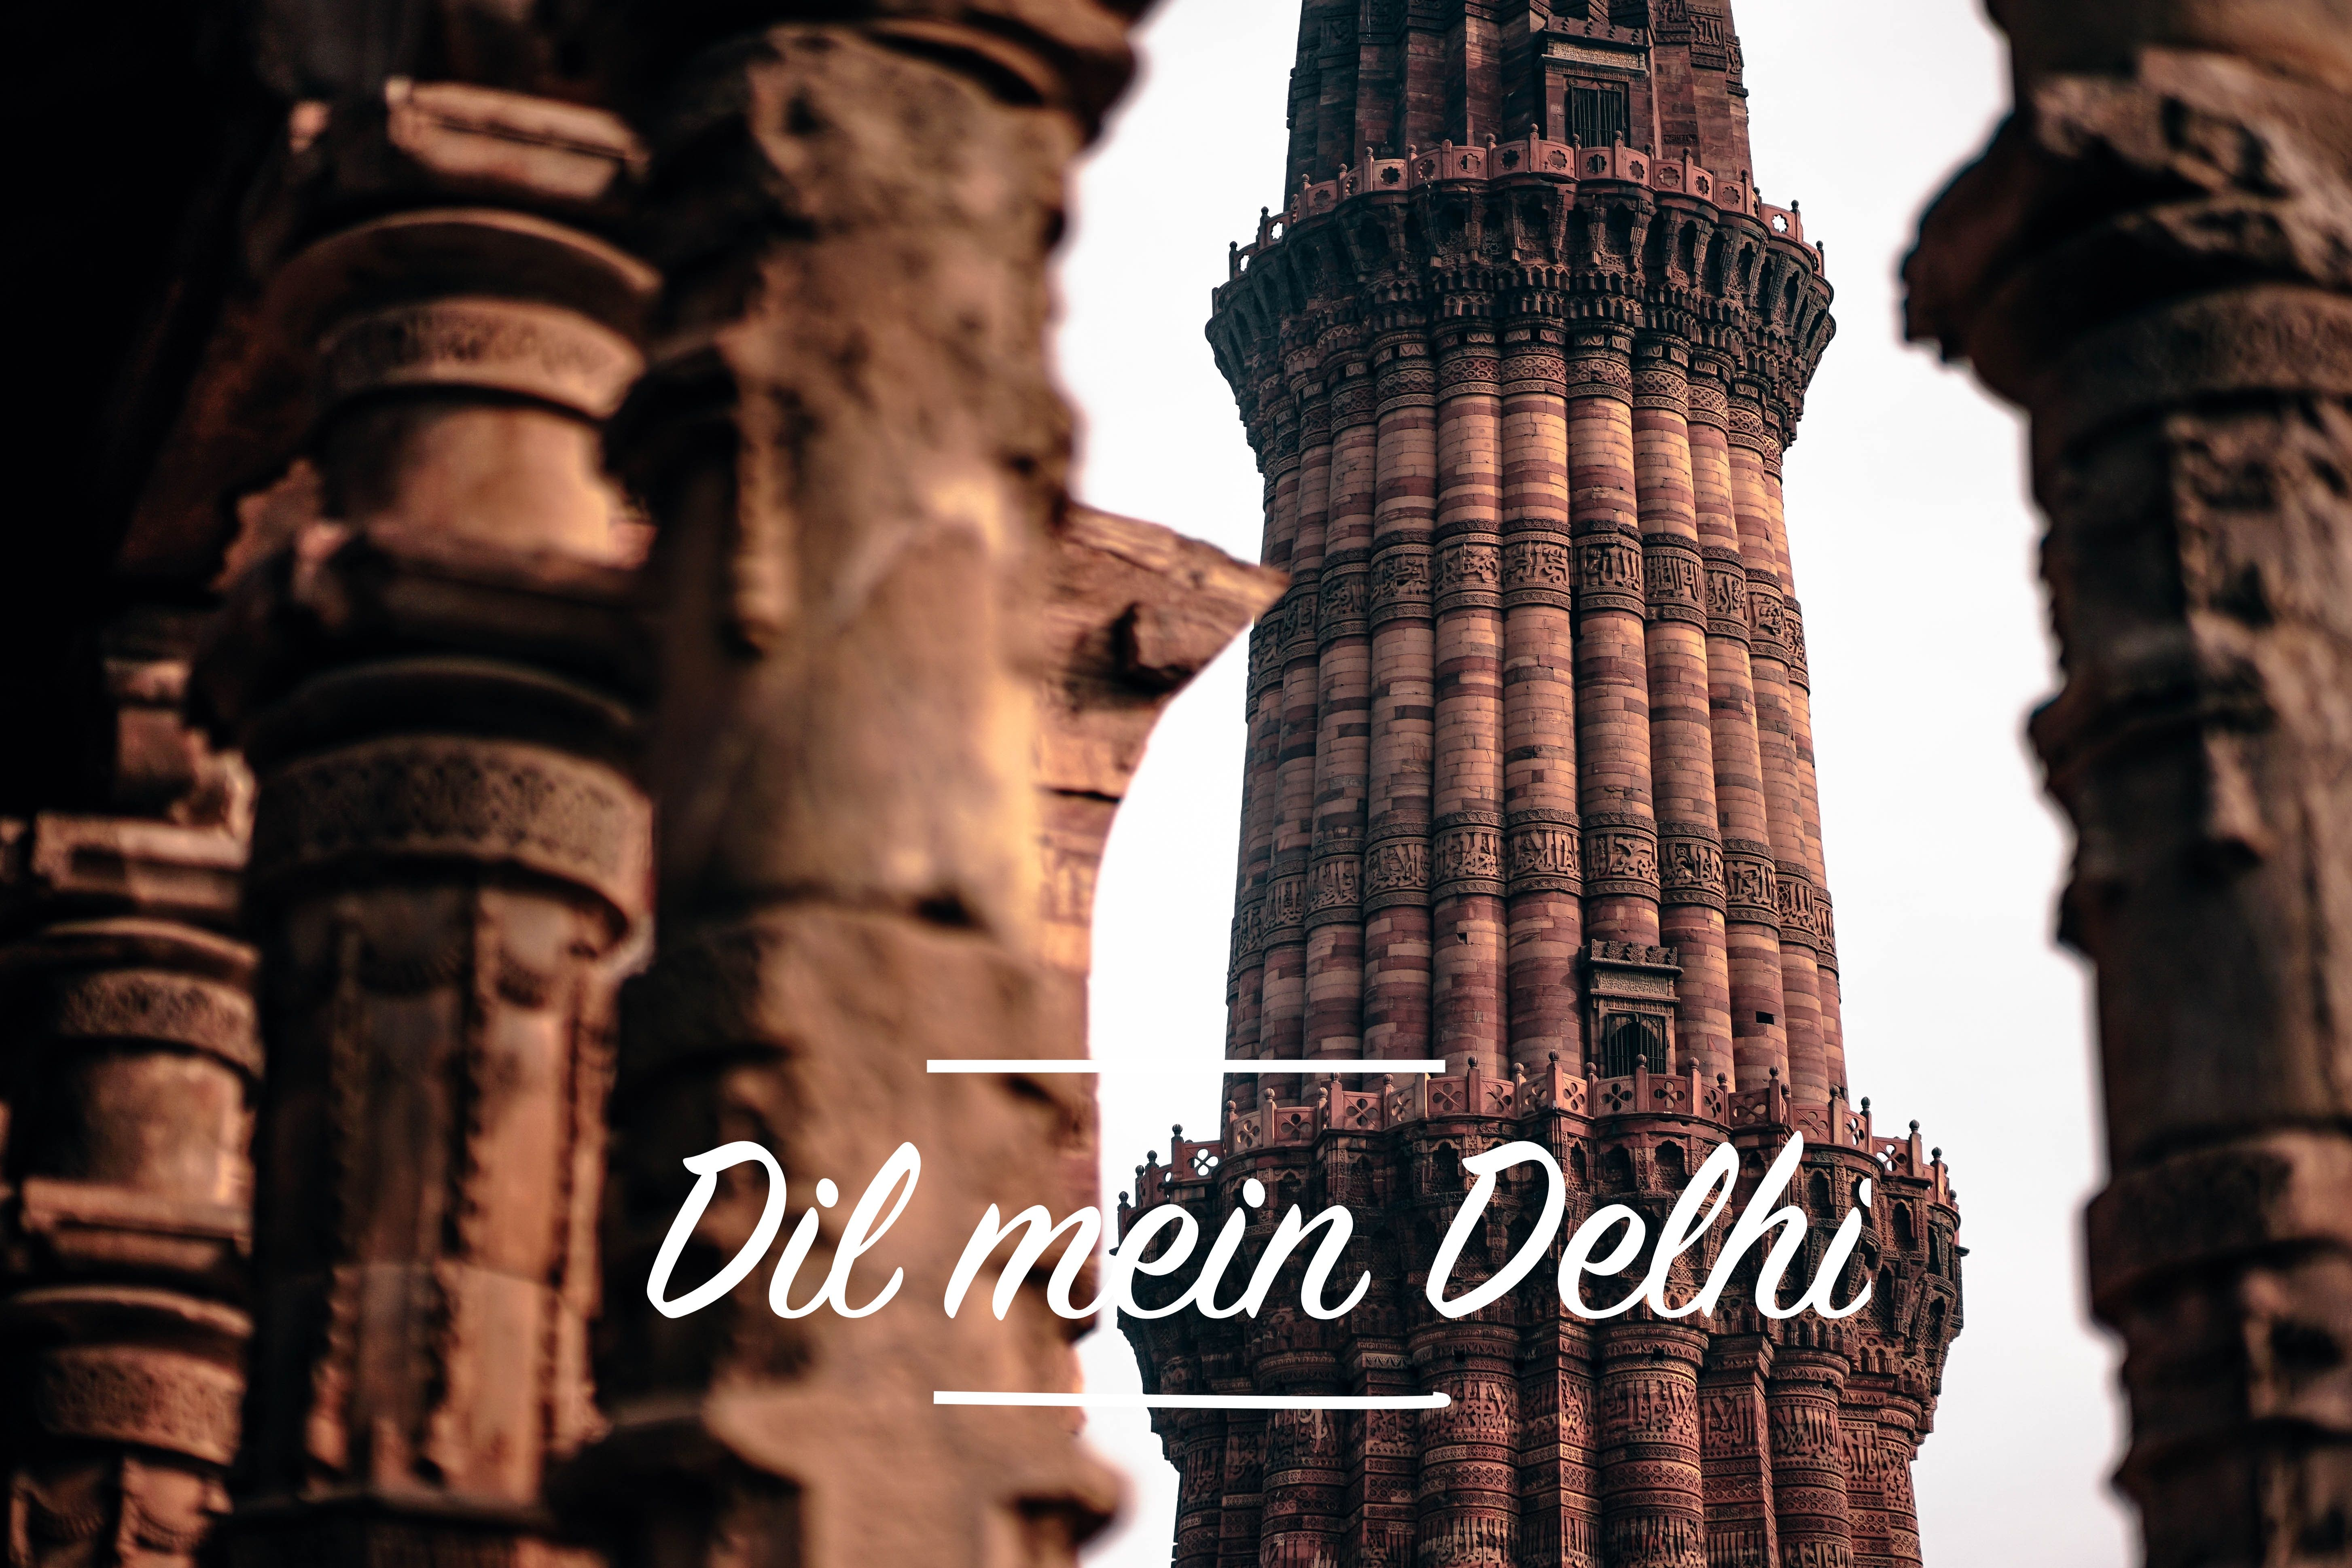 Dil Mein Delhi With Images World Heritage Sites Unesco